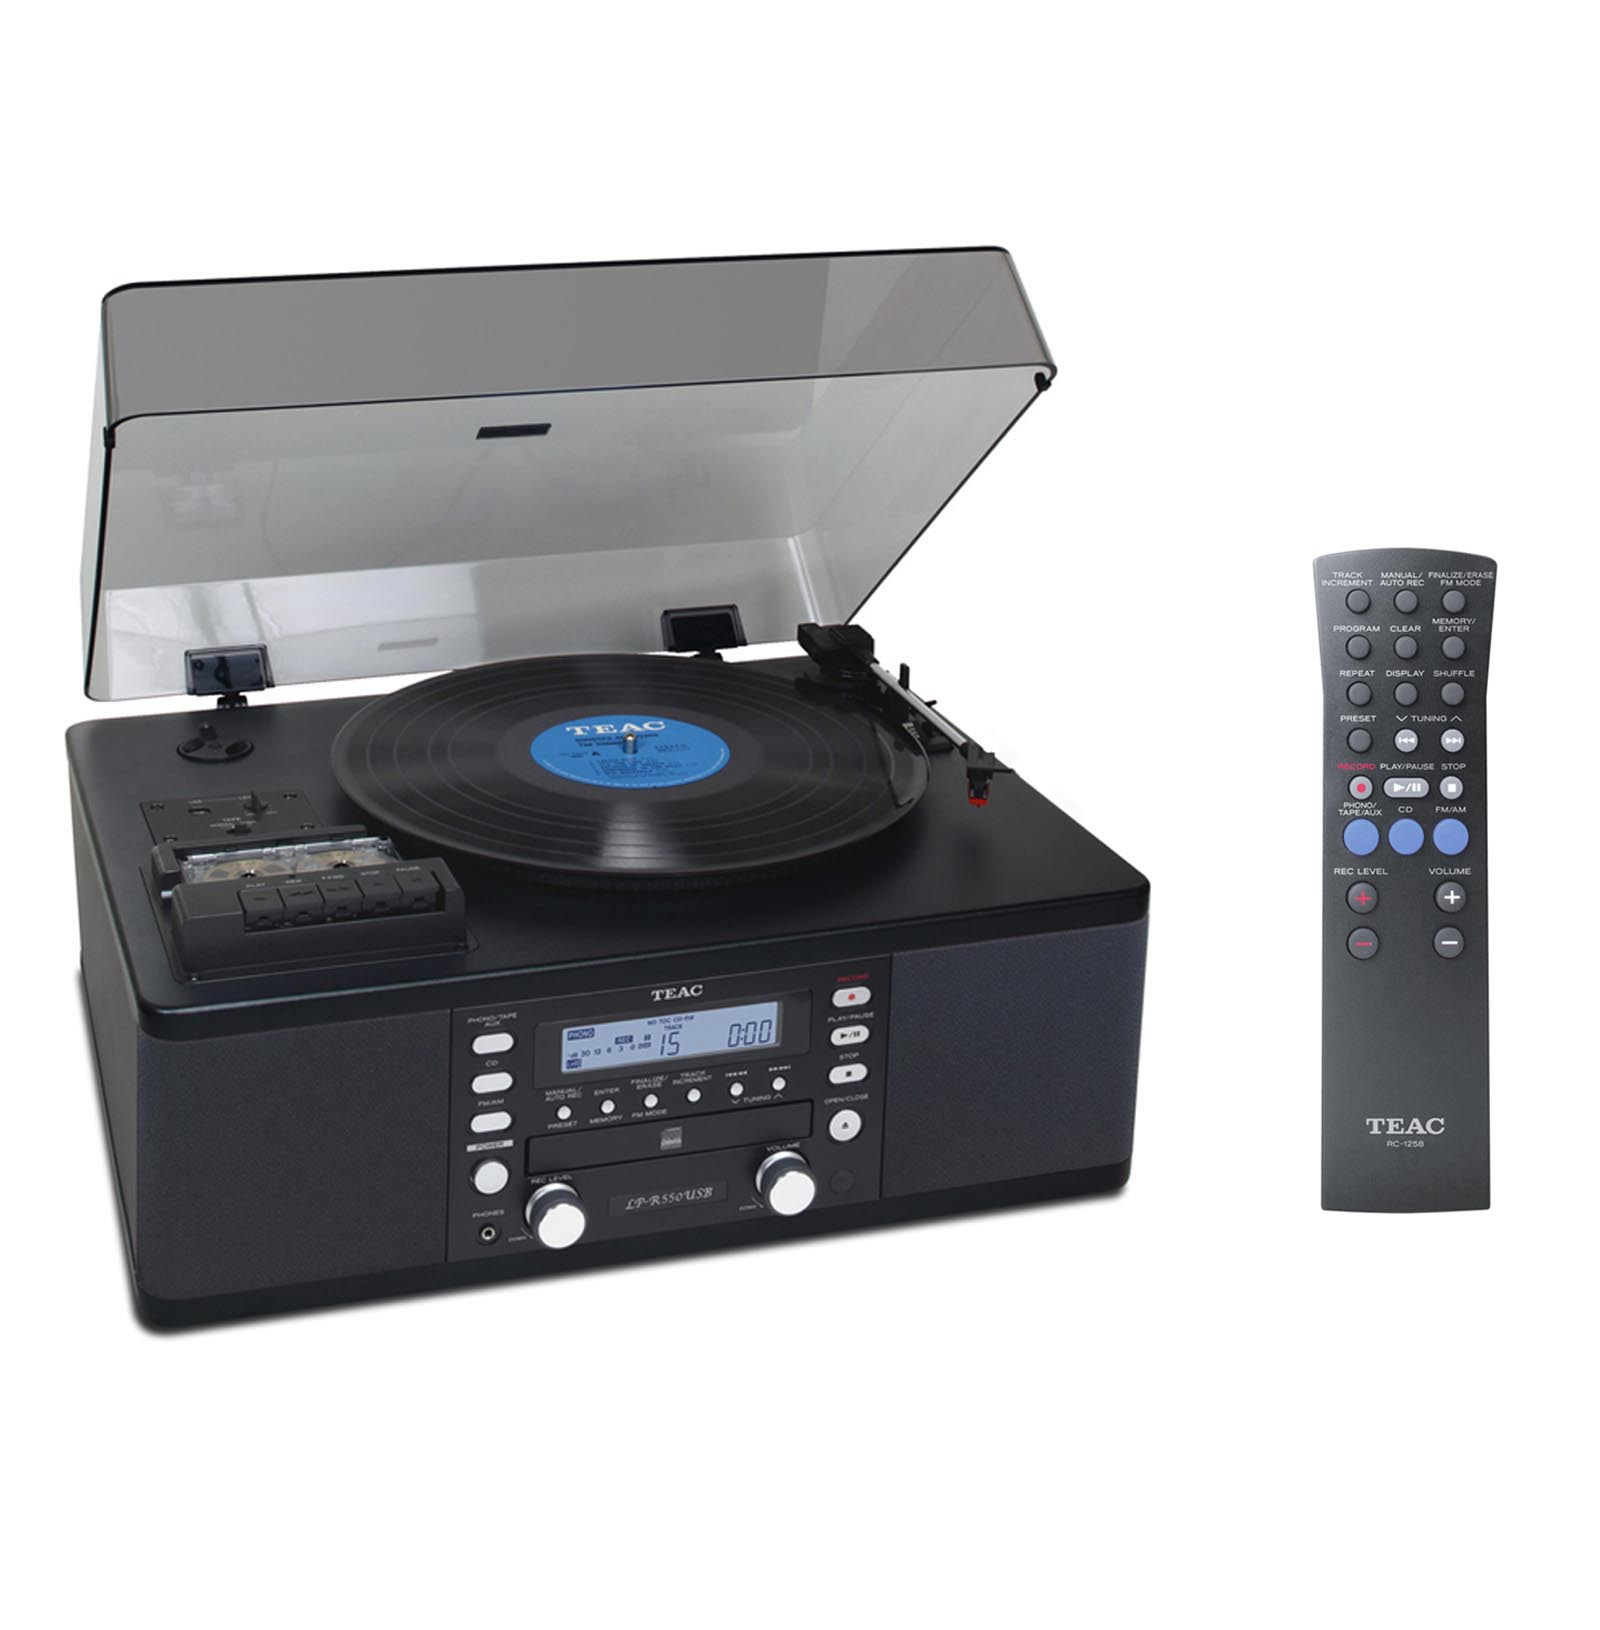 CD Recorder Cassette and Turntable BLACK by TEAC